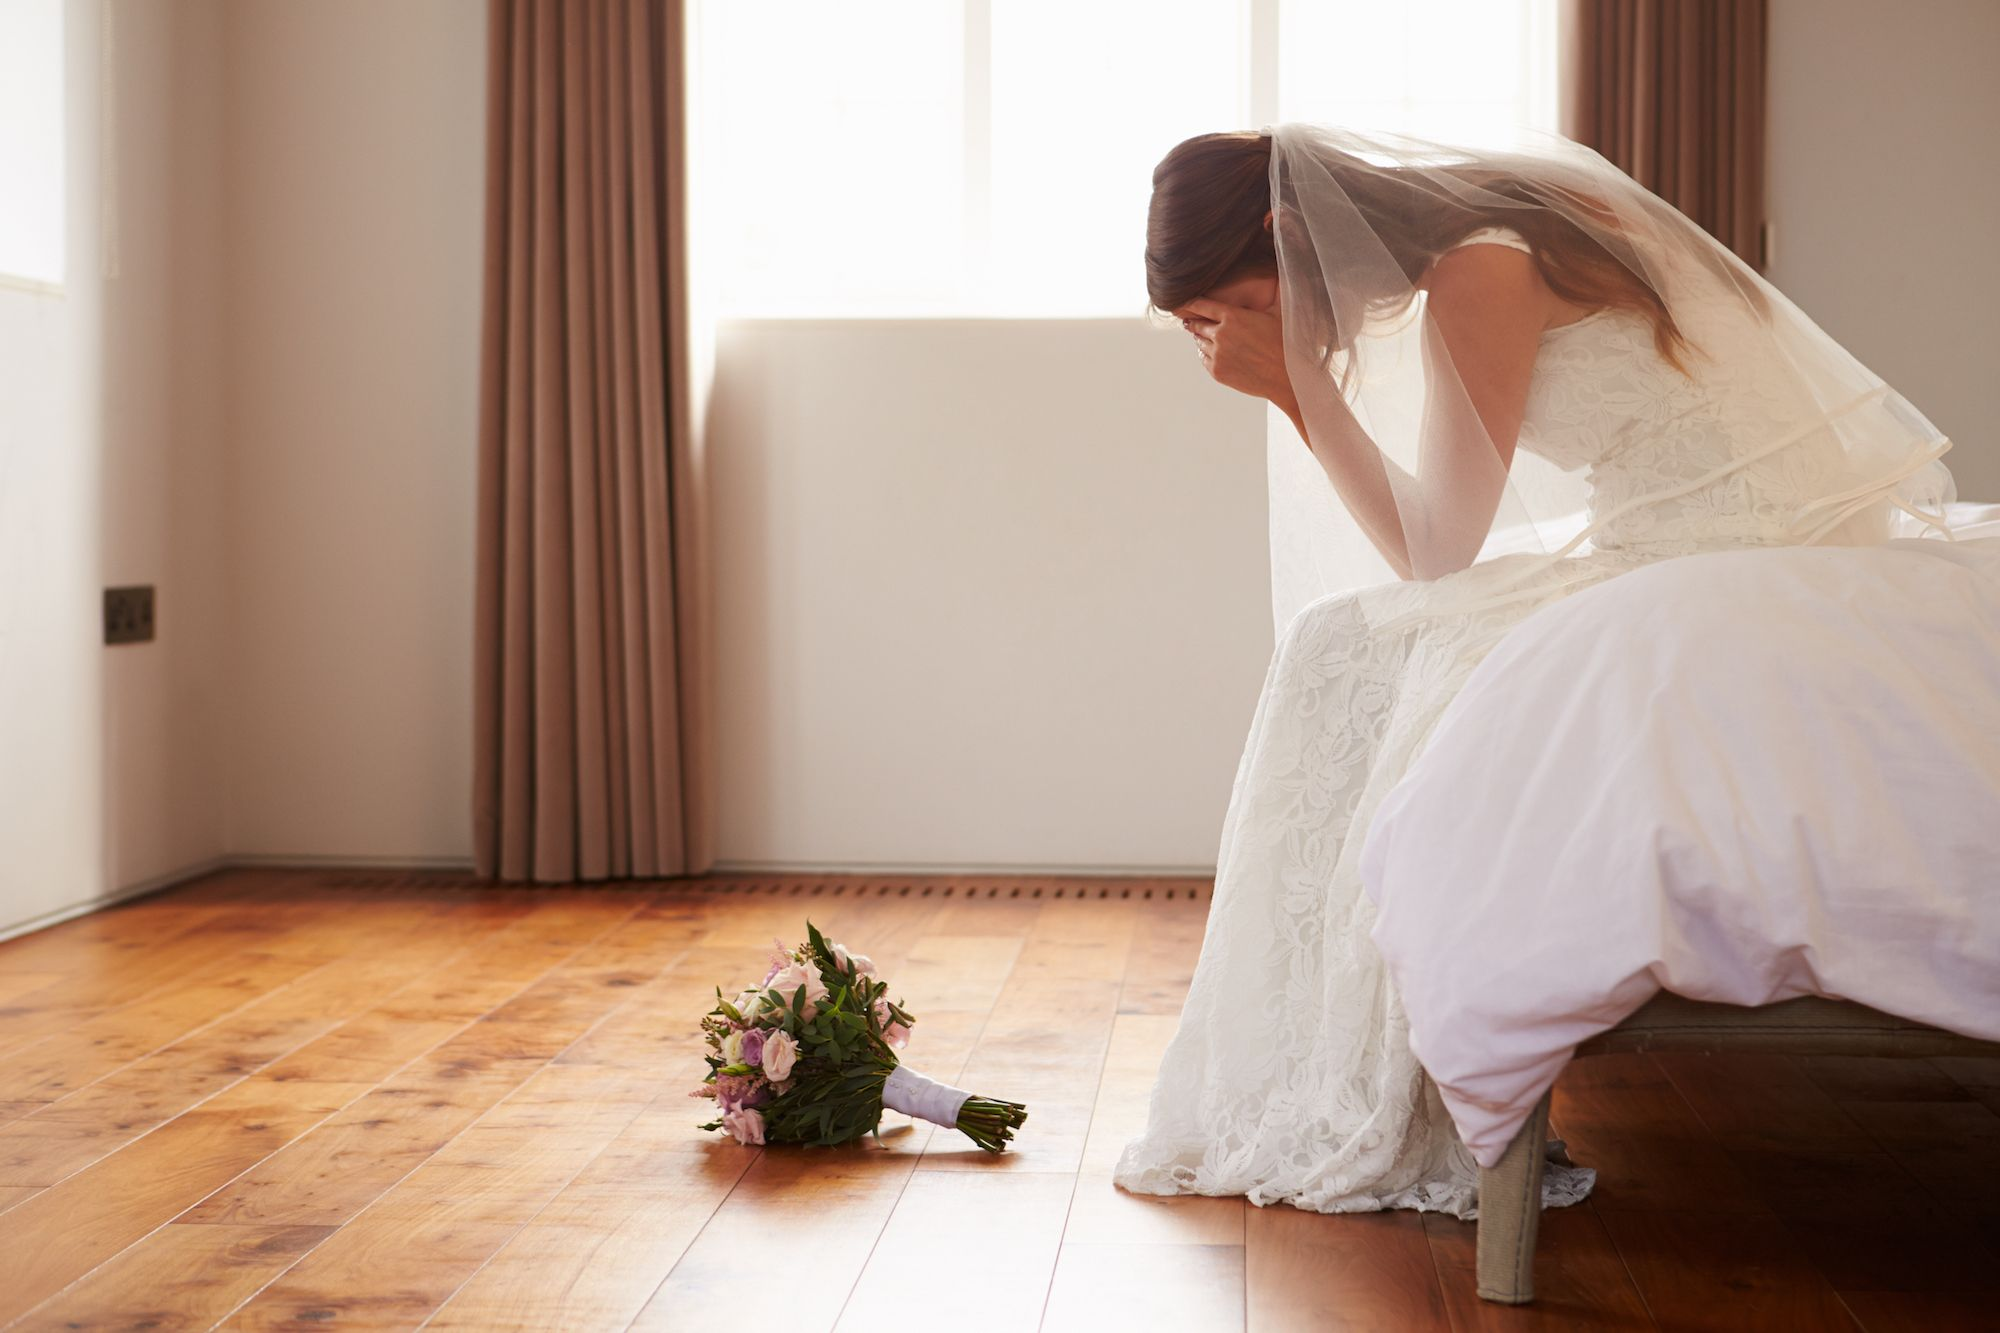 Couples must cancel their wedding if pinged by the NHS app